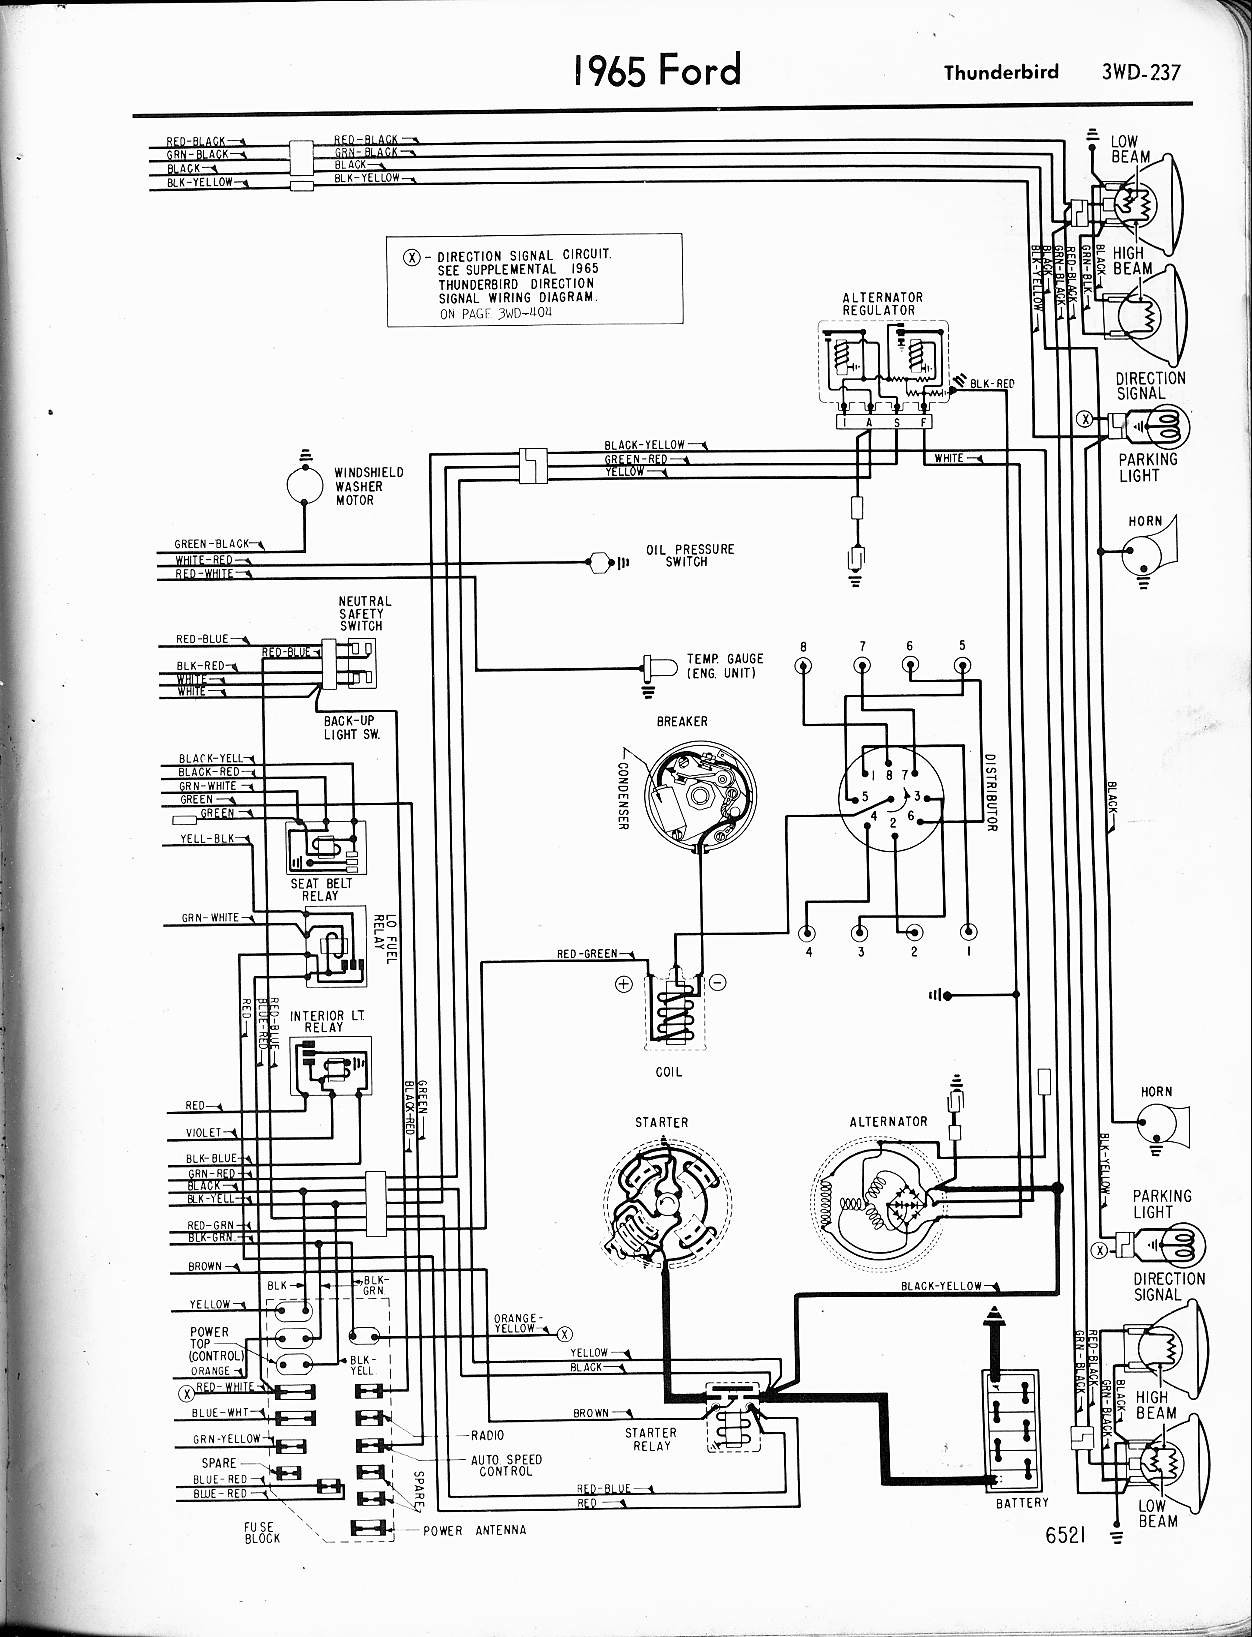 1979 ford thunderbird wiring diagram wiring rh westpol co 90 Ford Thunderbird 1980 Ford Thunderbird